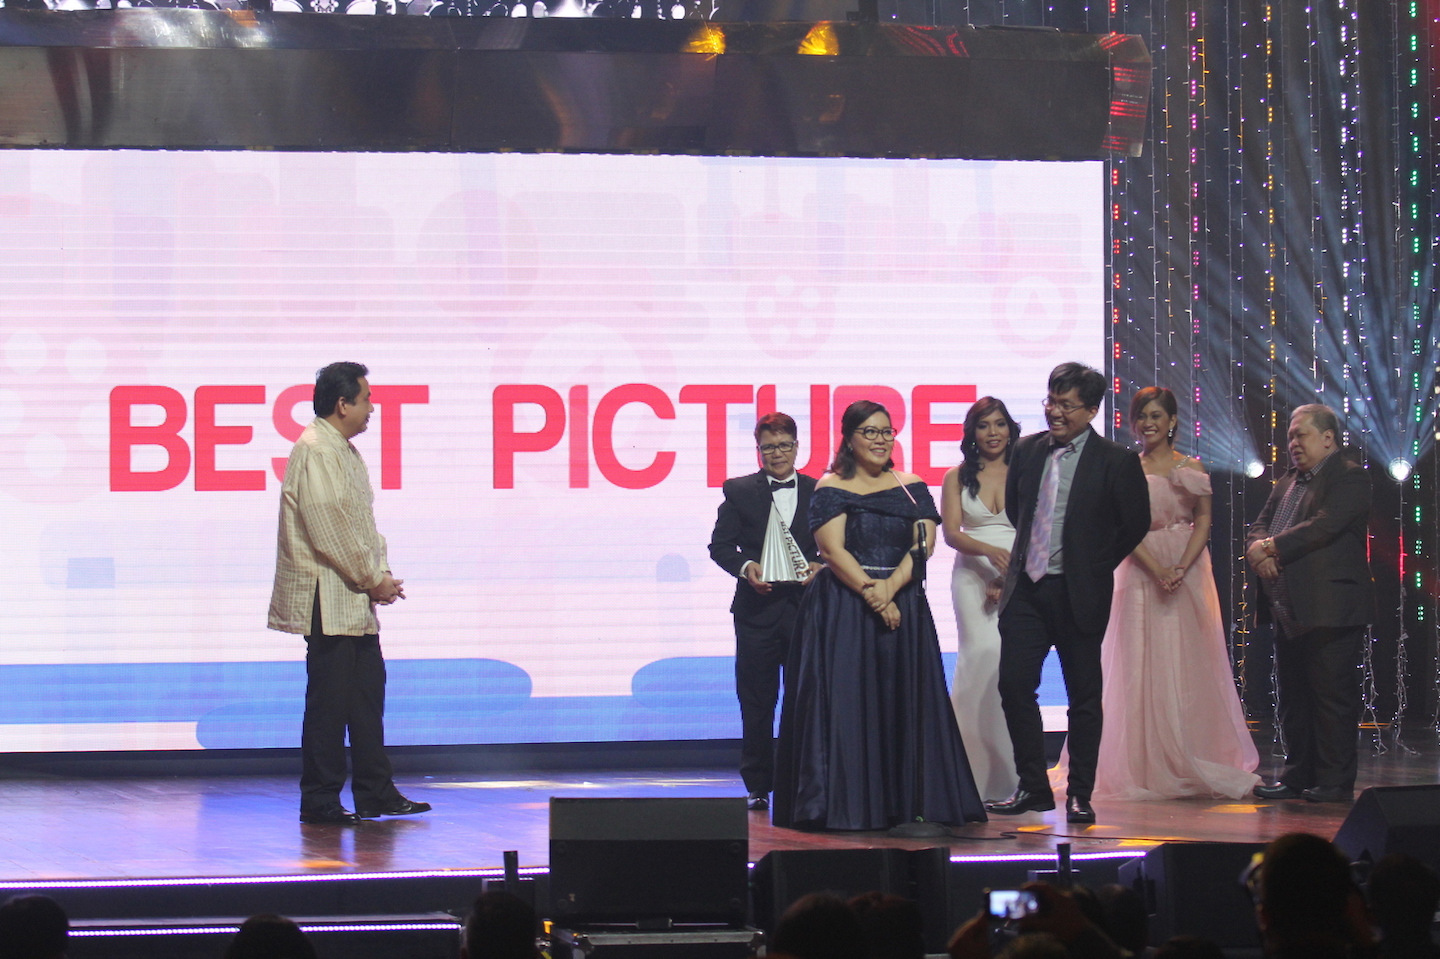 2016 MMFF Best Picture - Sunday Beauty Queen